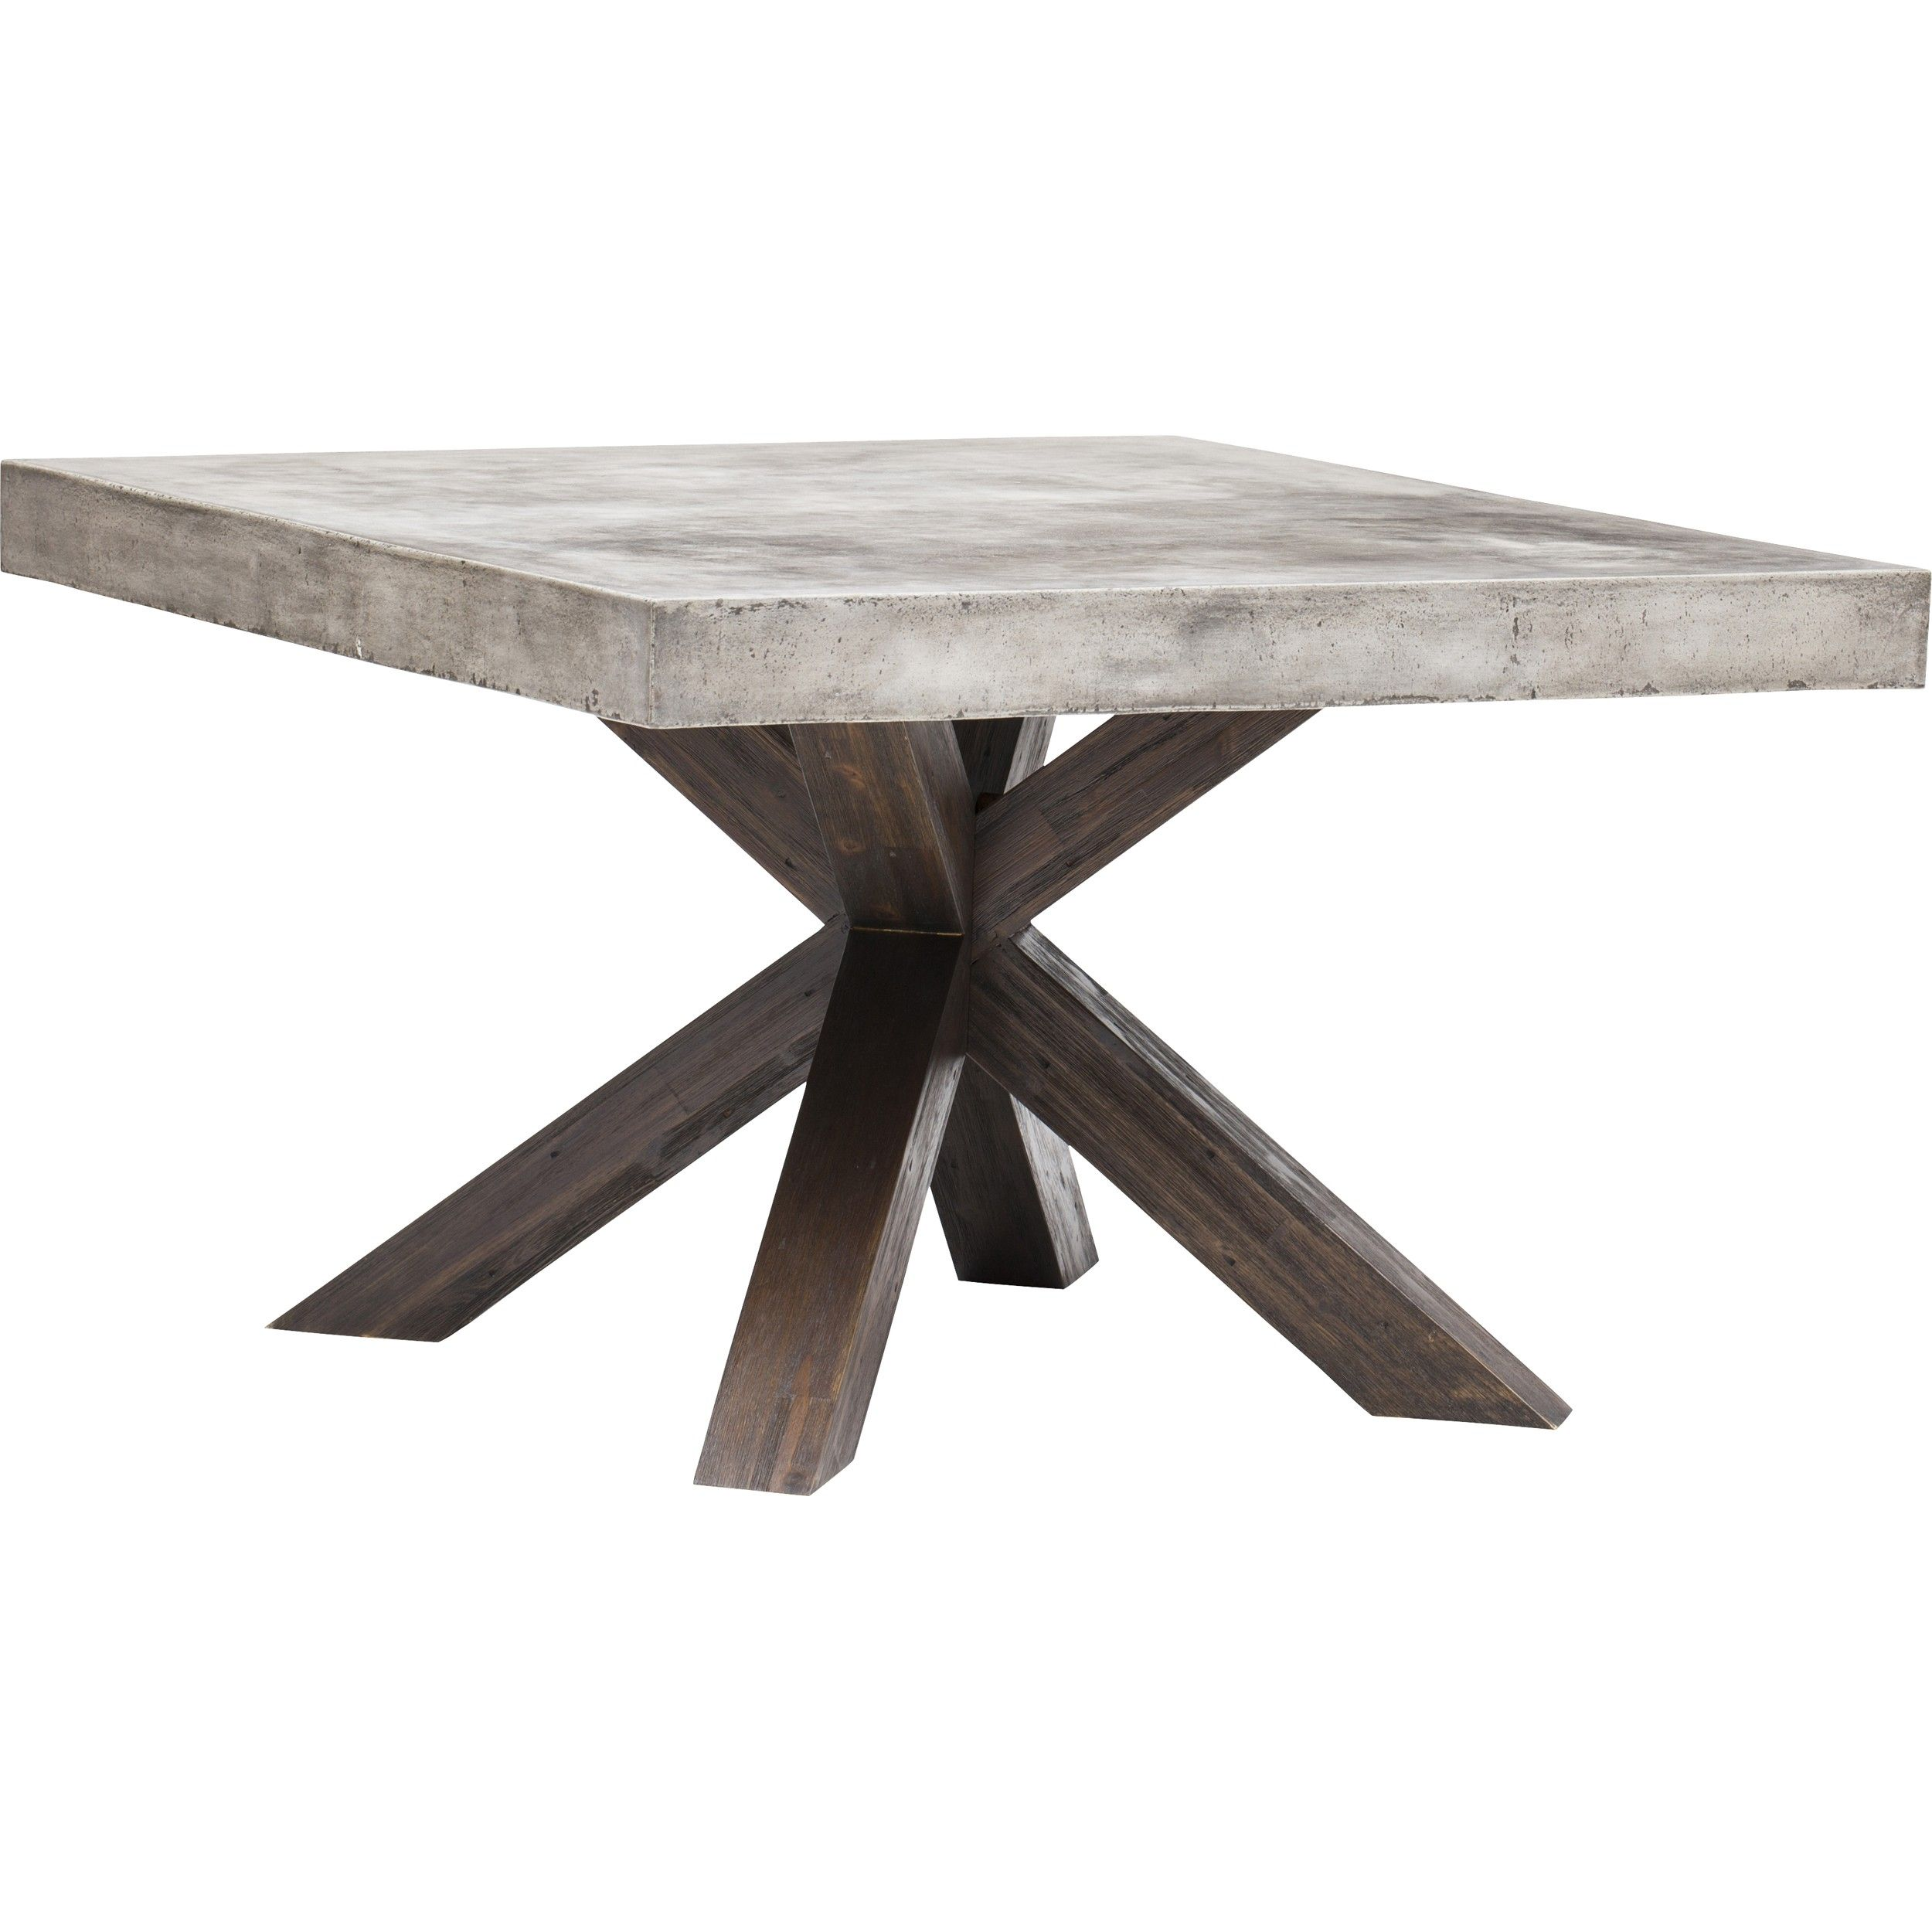 Square Dining Table With Bench: Warwick Square Dining Table